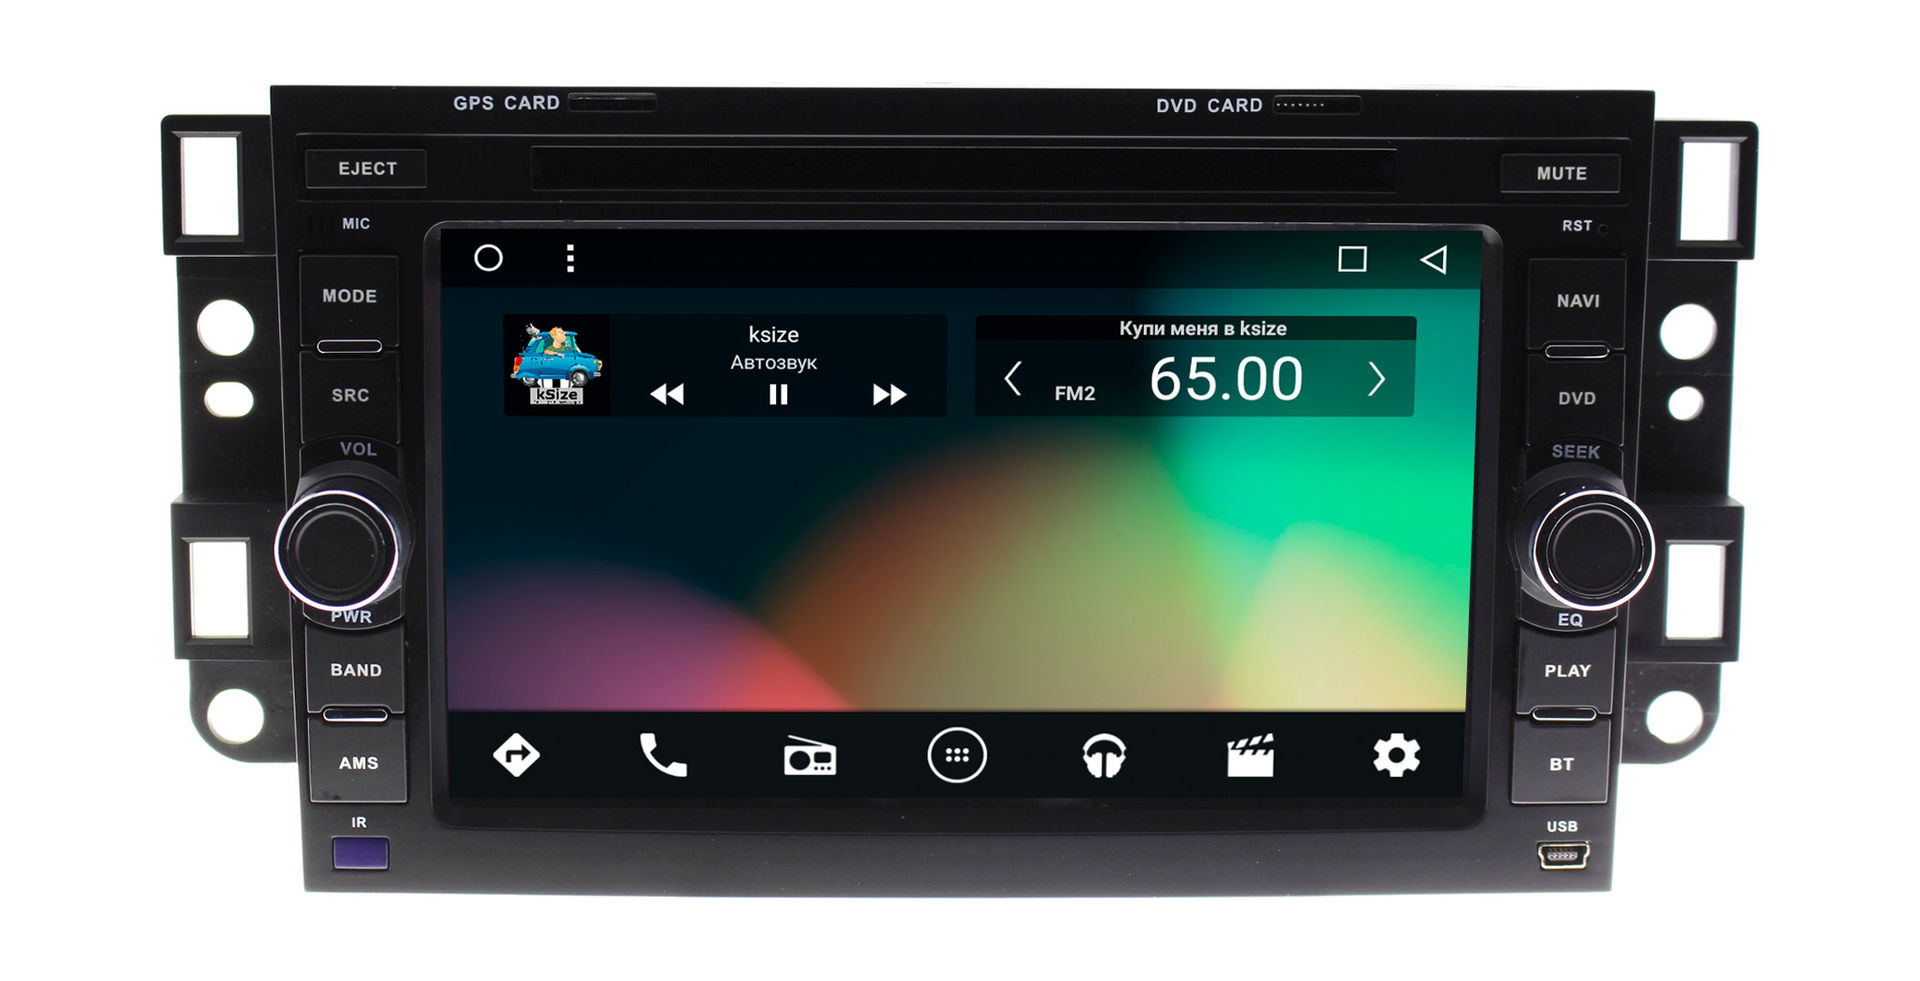 Штатная магнитола Wide Media WM-VS7A706NB-2/16-RP-CVLV-58 для Chevrolet Aveo I, Captiva I, Epica I 2006-2012 Android 7.1.2 7 18 months baby walker anti rollover multi function with music baby push can sit can stand children walker adjustment wheel